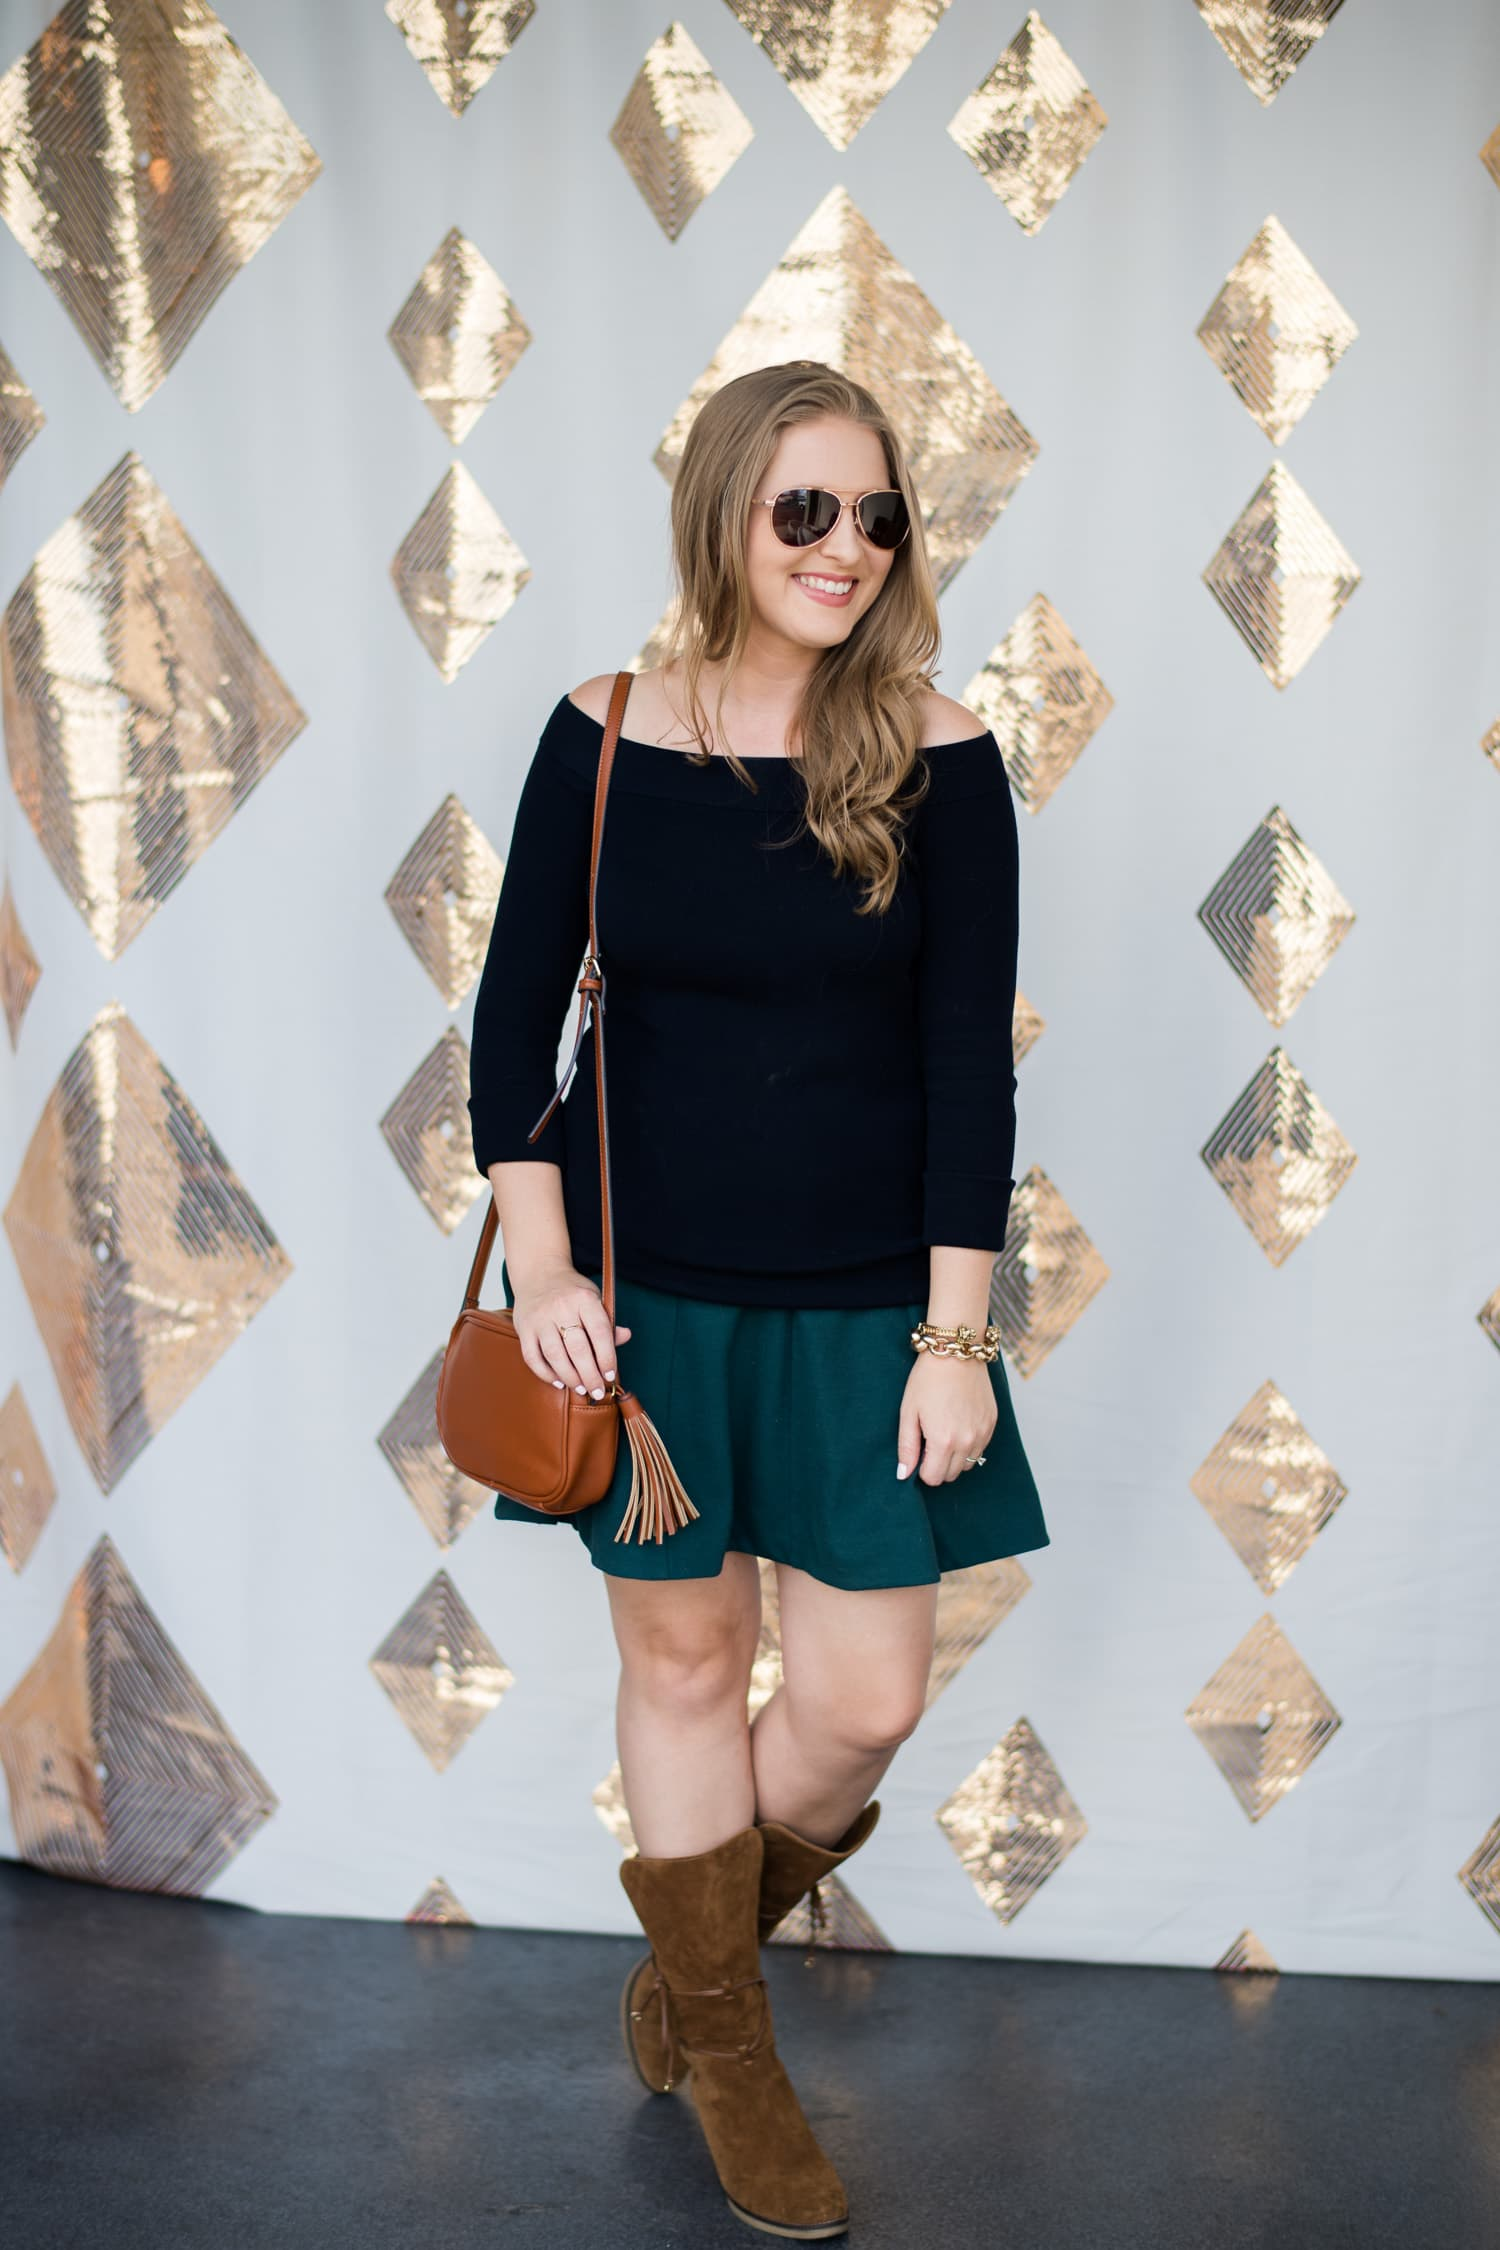 casual-fall-outfit-brown-suede-boots-foster-grant-opening-orlando-3255